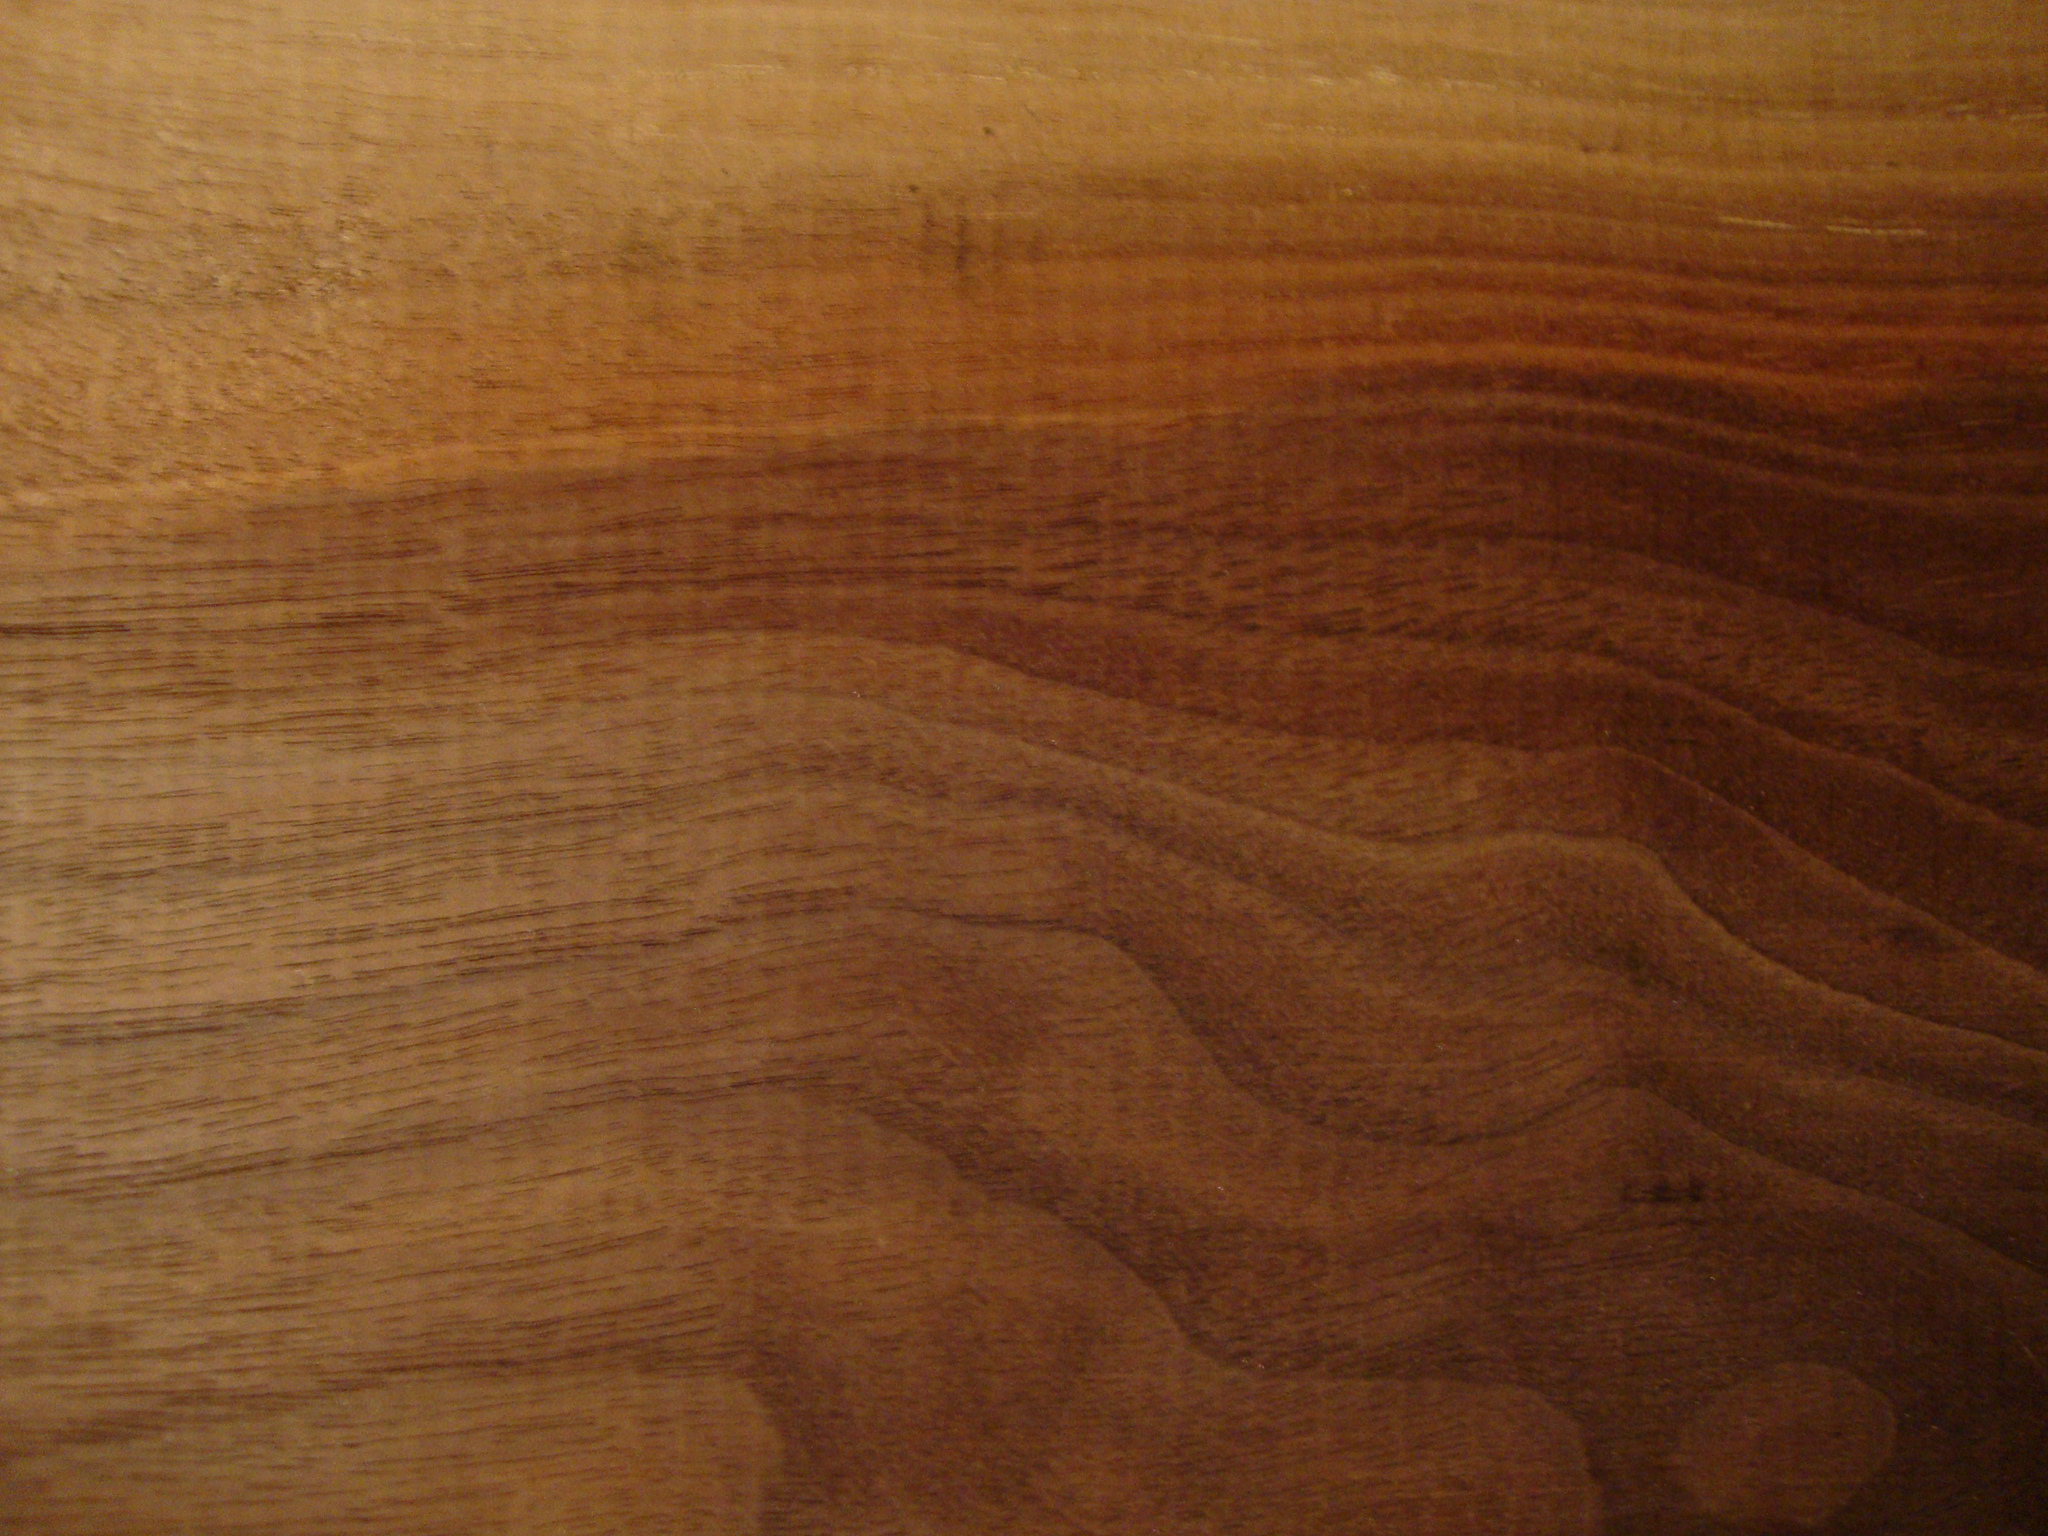 1000 Images About Wood On Pinterest Wallpapers Wood